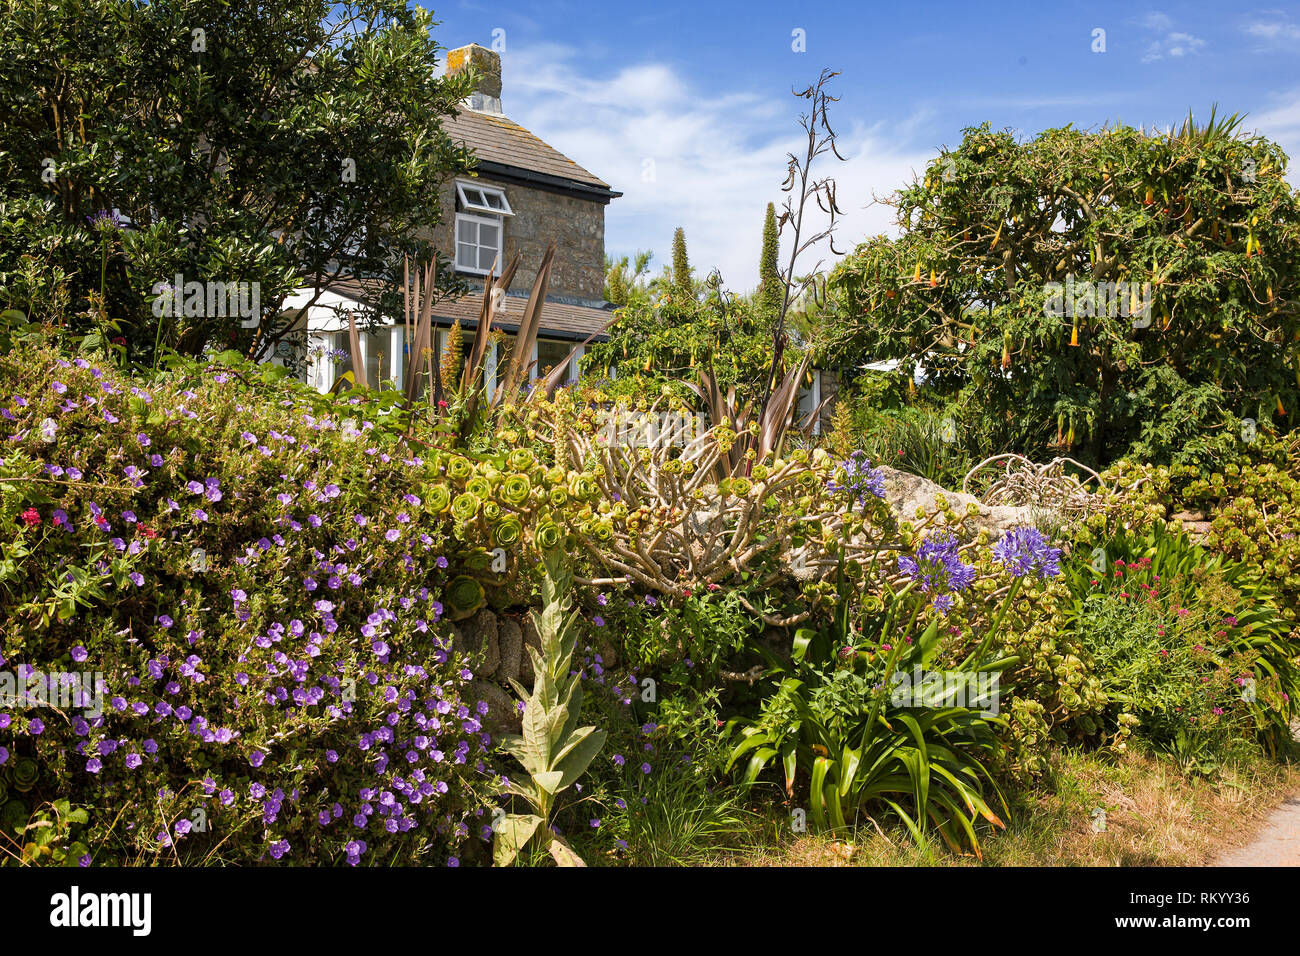 Cottage in Old Lane, Higher Town, St. Agnes, Isles of Scilly, UK - Stock Image